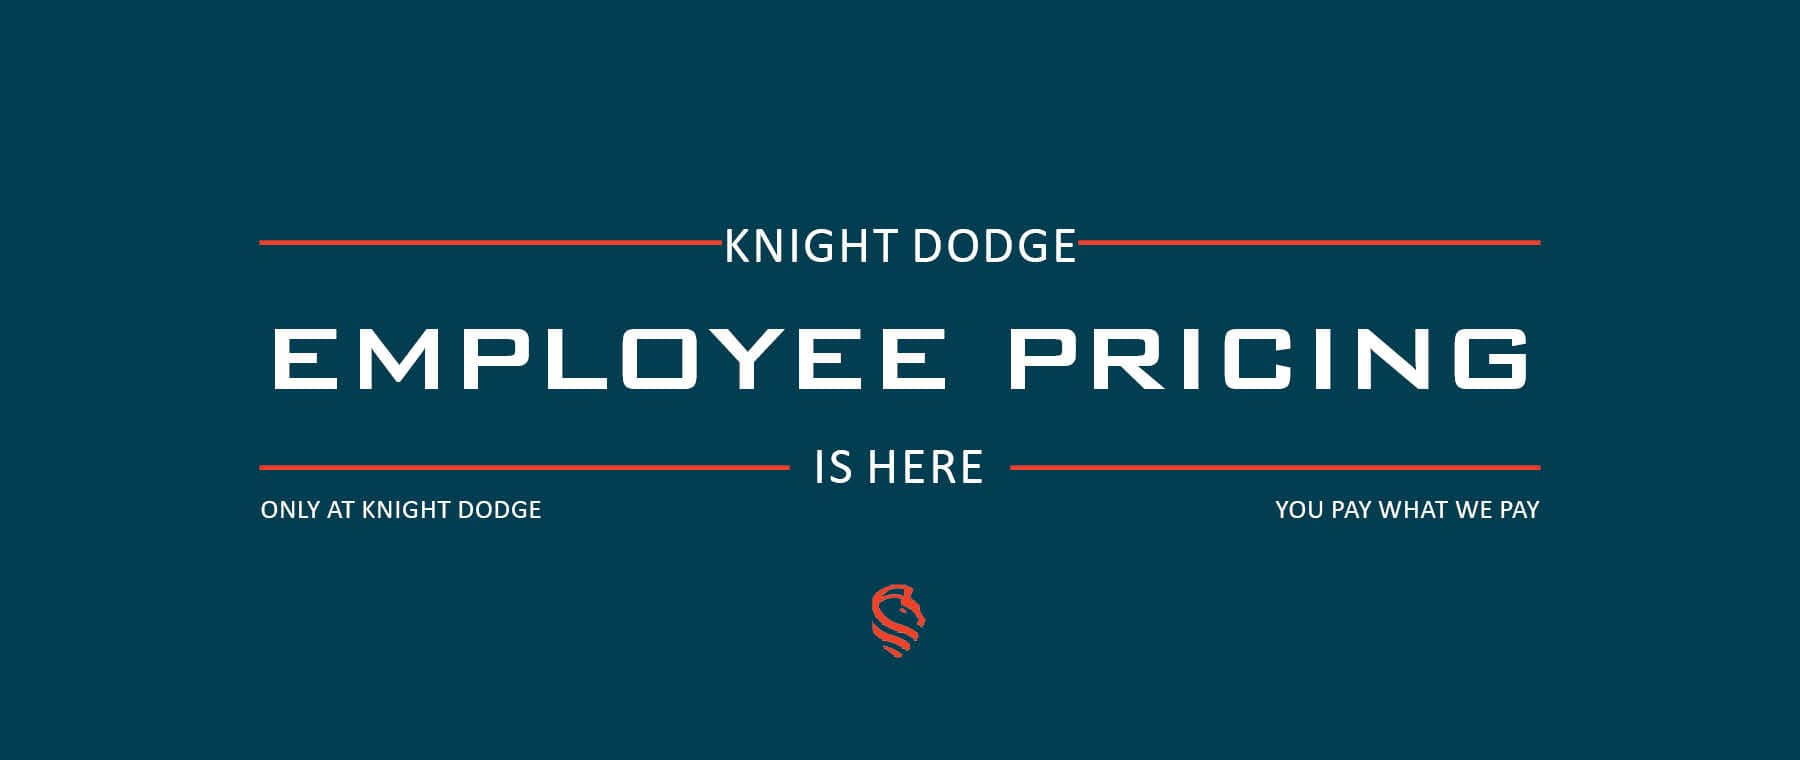 Employee Pricing at Knight Dodge